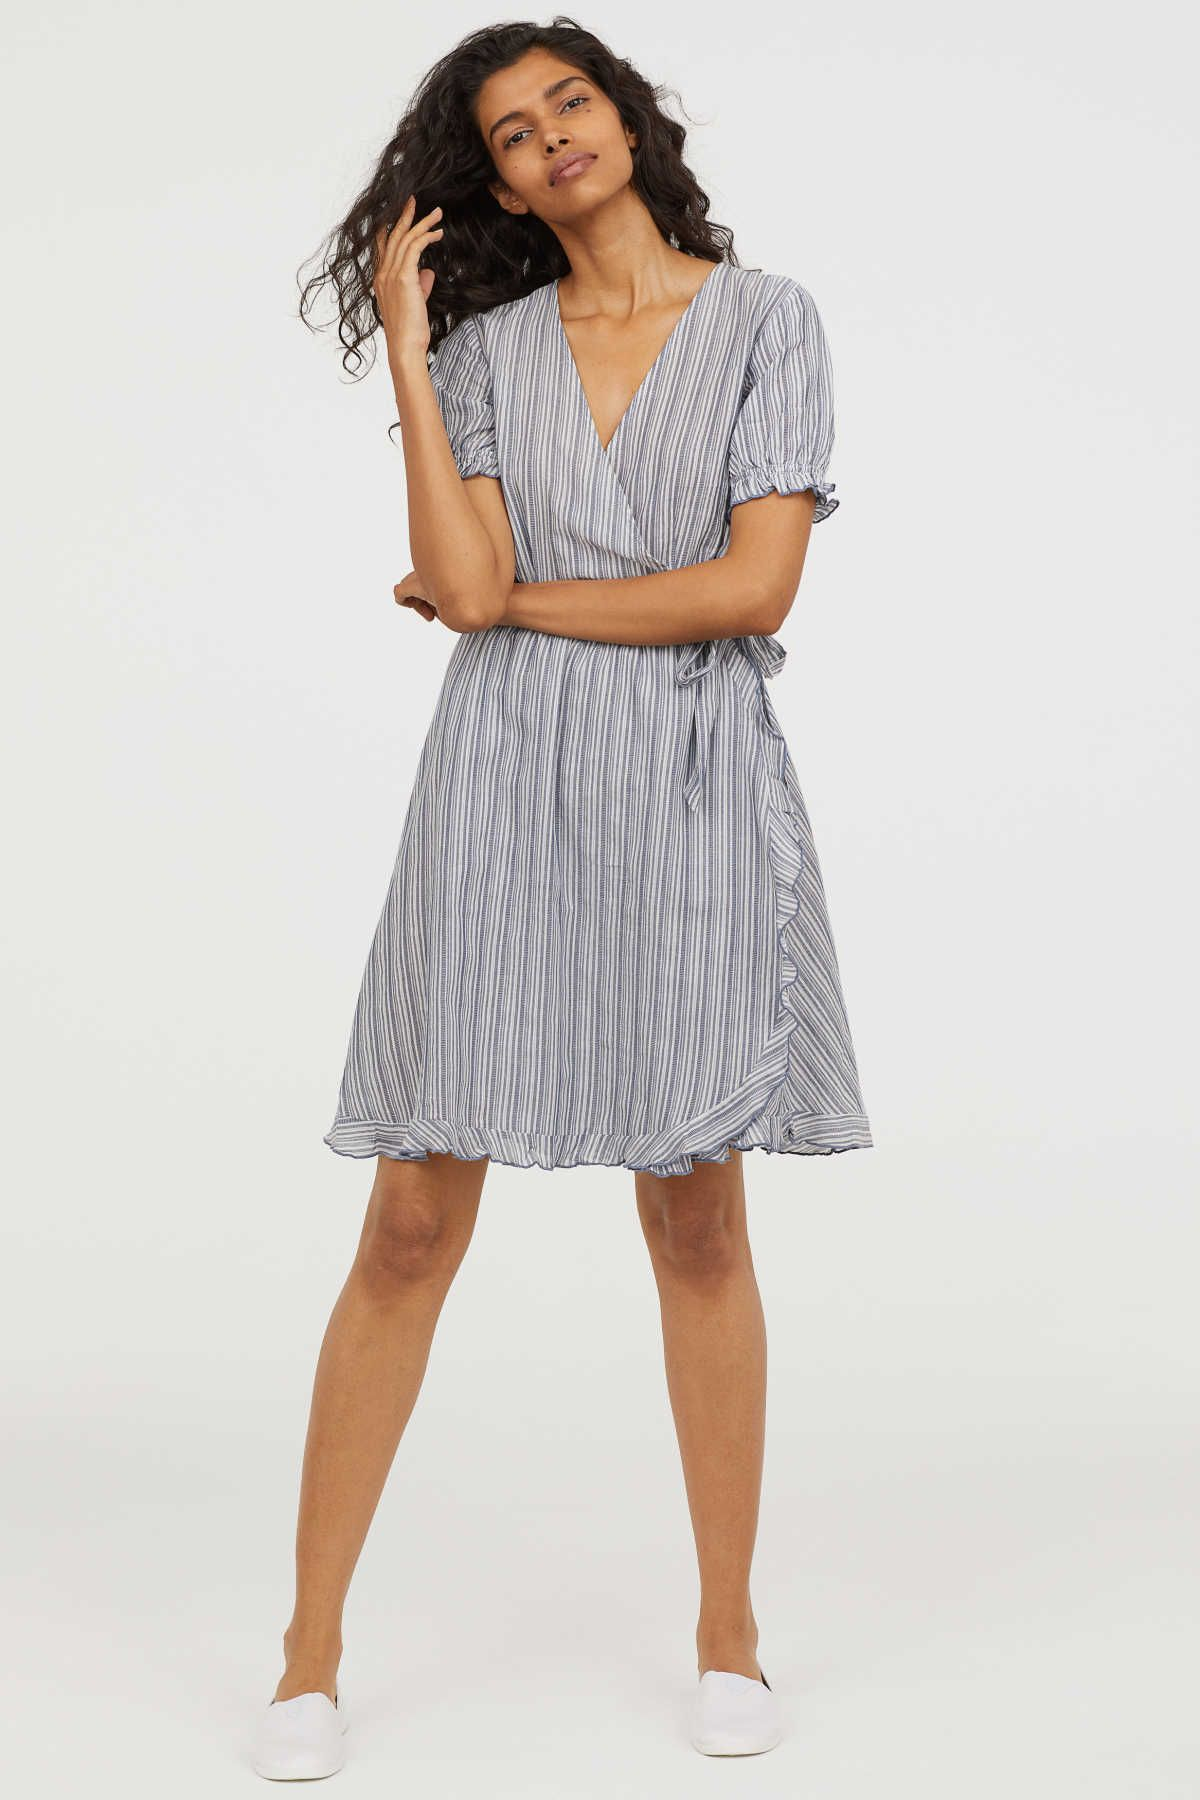 01be409476ce Blue/white striped. Knee-length wrap dress in airy, woven cotton fabric.  V-neck, seam at waist with ties, and short puff sleeves with narrow,  elasticized